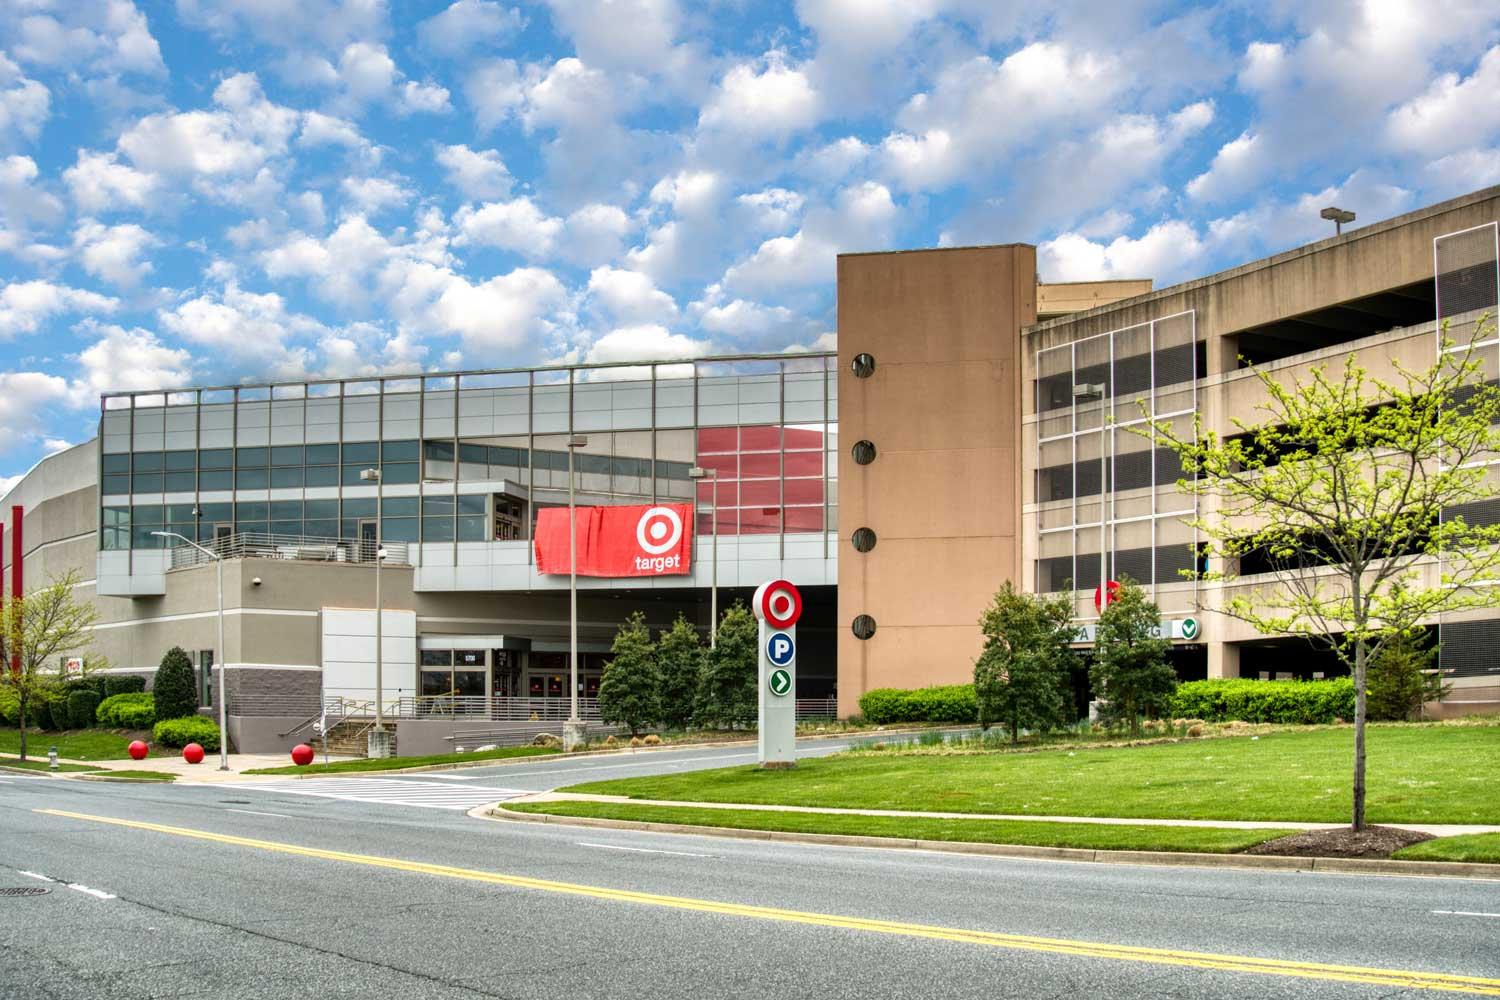 Target is 5 minutes from Village Square West Apartments in North Bethesda, MD